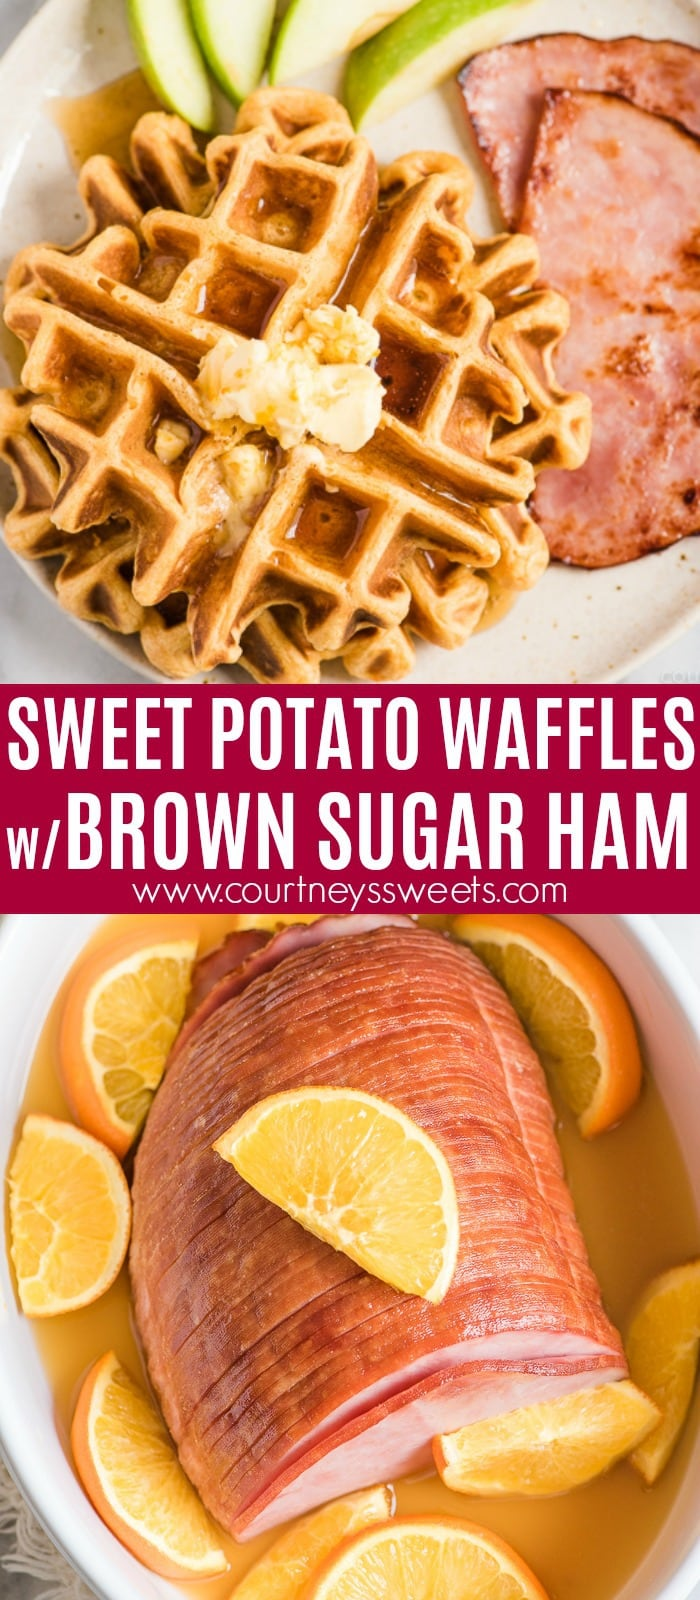 sweet potato waffles with baked brown sugar ham